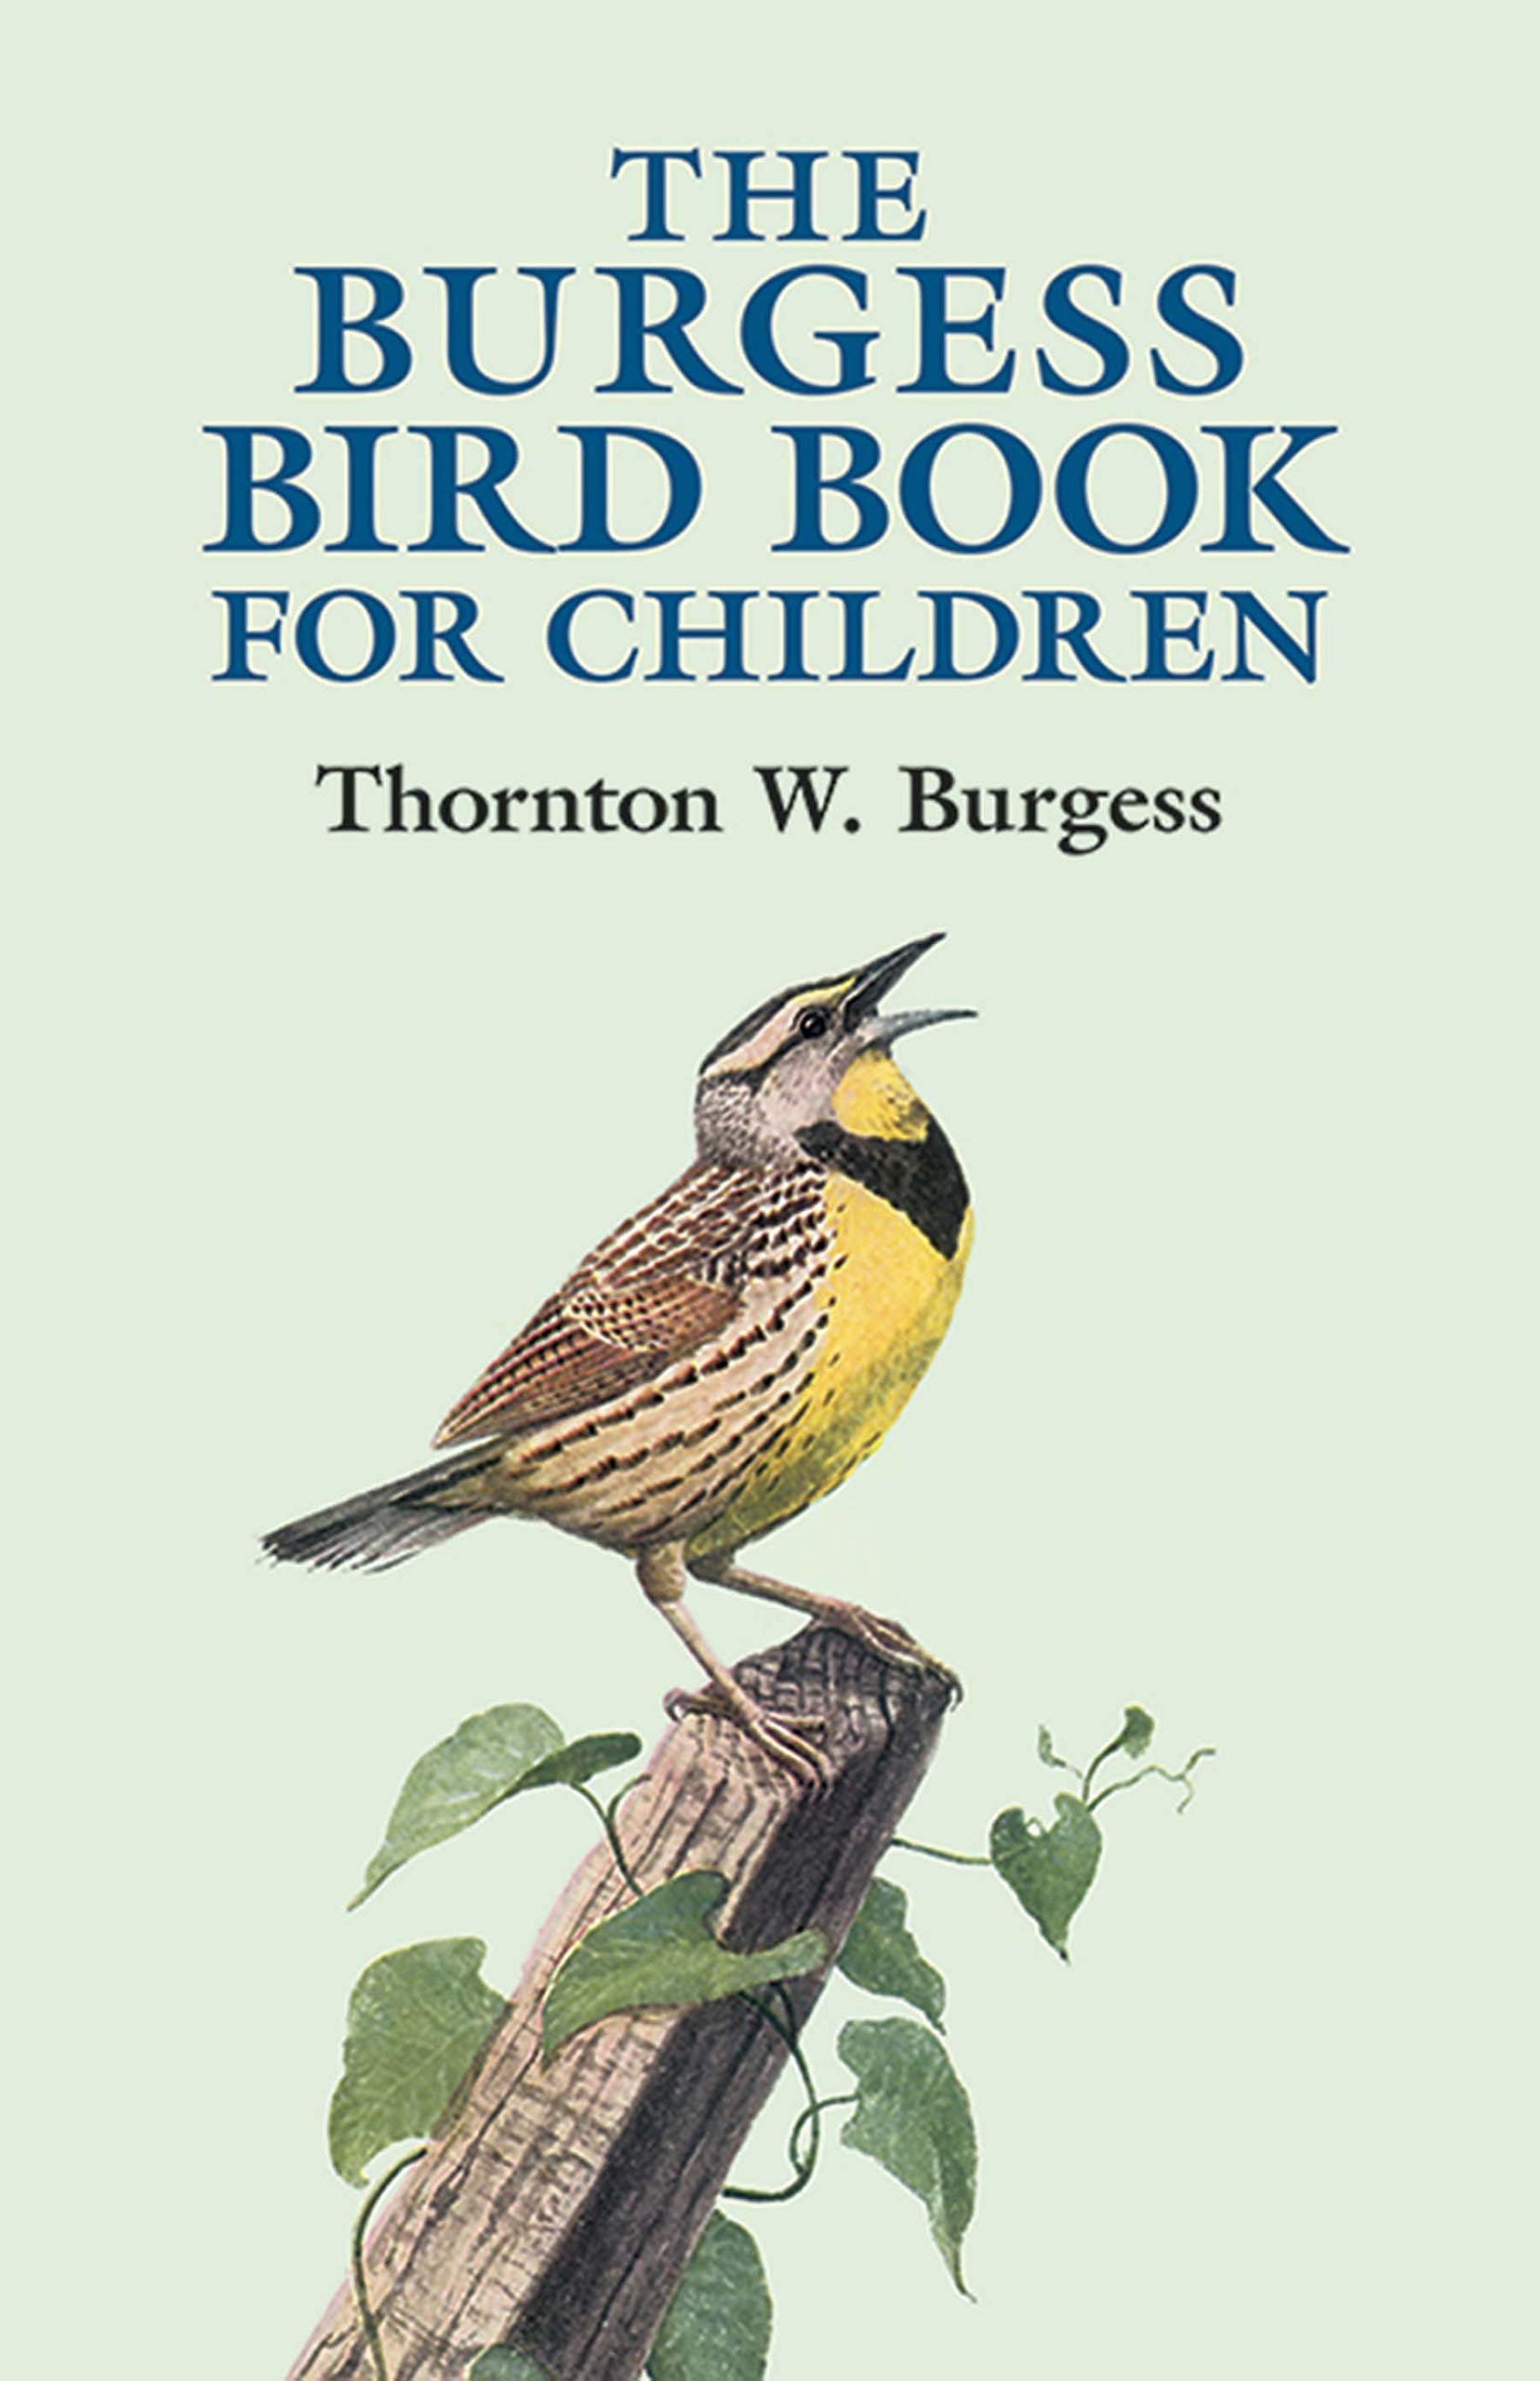 The Burgess Bird Book for Children (Dover Children's Classics): Burgess, Thornton W.: 9780486428406: Amazon.com: Books